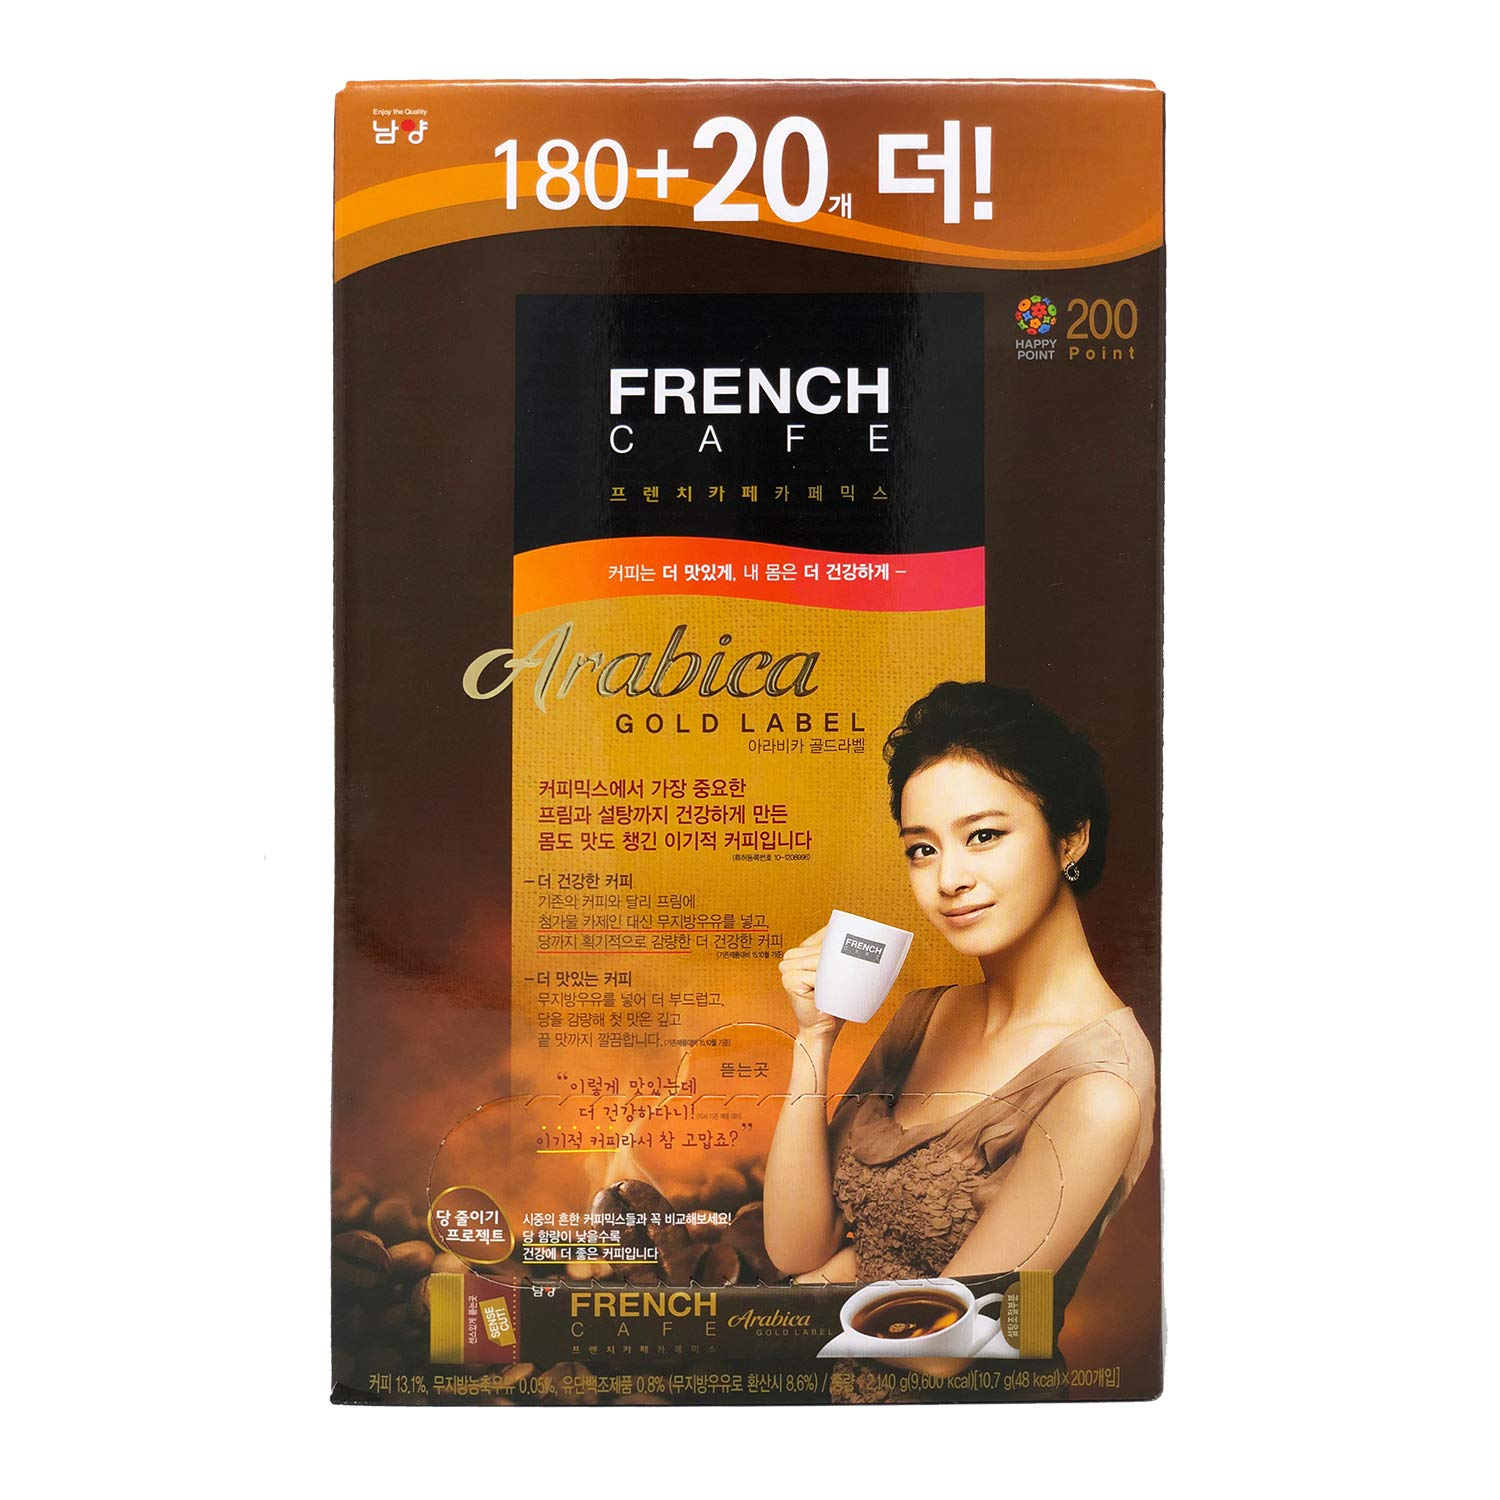 Namyang French Cafe Ranking TOP4 Arabica Gold Label Instant Coffee 200 Mix S 1 year warranty